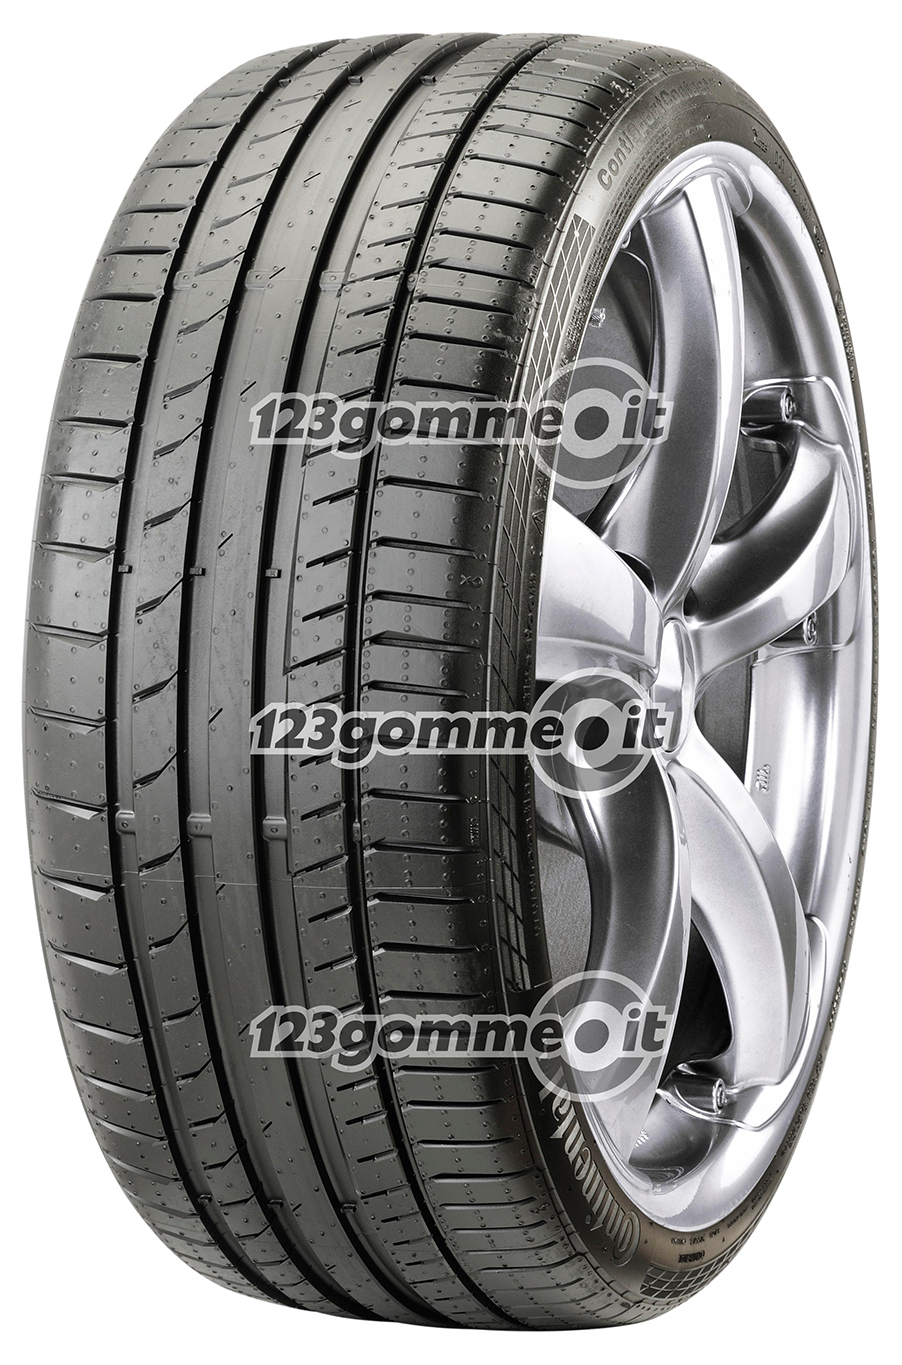 275/30 ZR21 (98Y) SportContact 5 P XL RO1 FR SIL  SportContact 5 P XL RO1 FR SIL